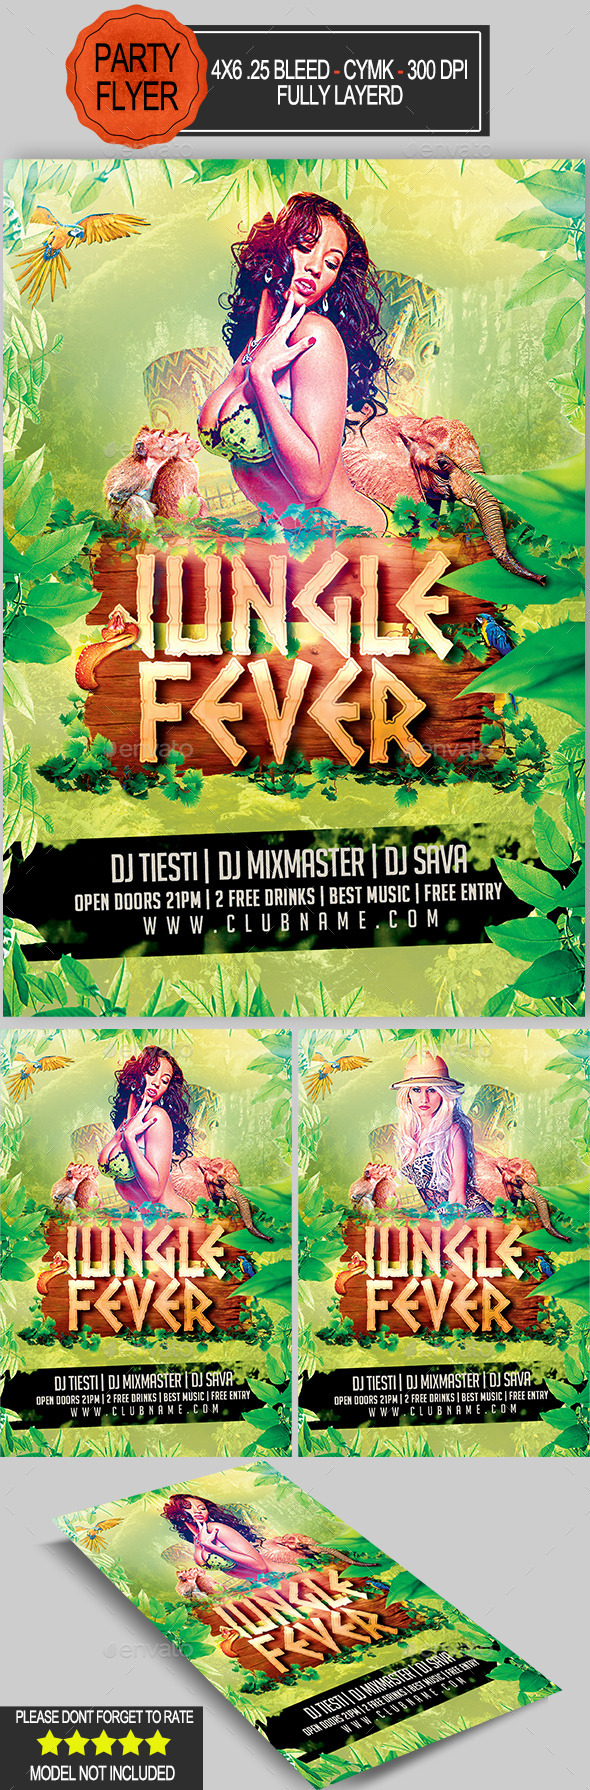 GraphicRiver Jungle Fever Flyer 10599284